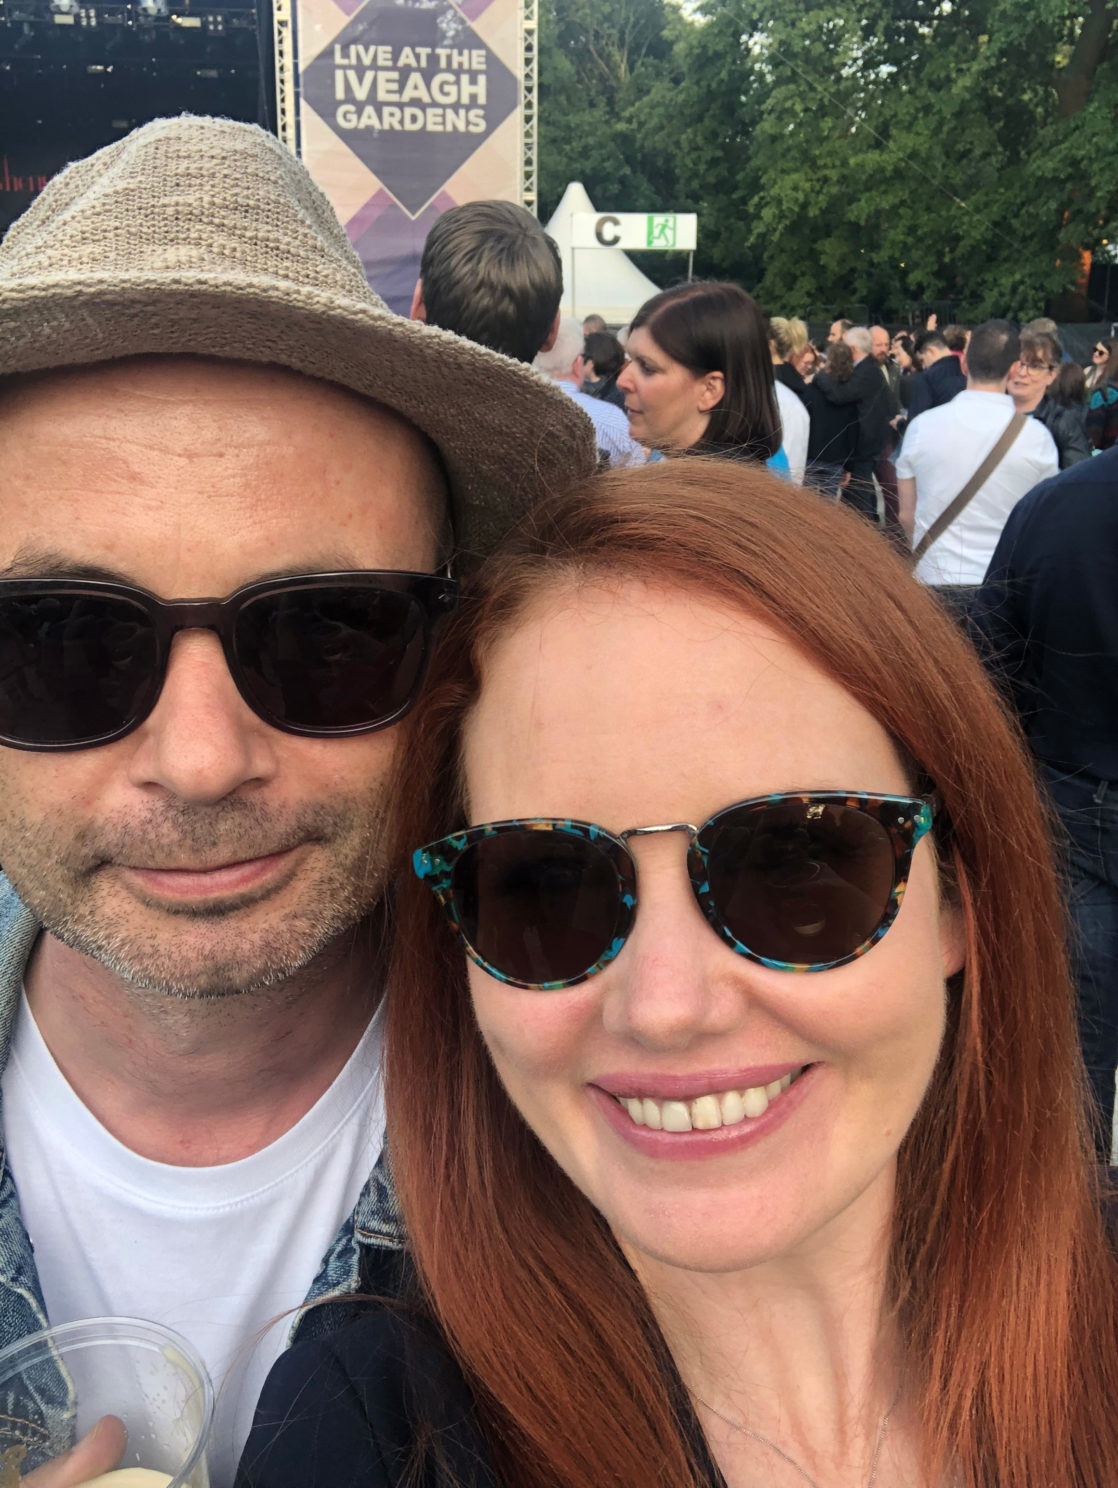 Garbage fans at Iveagh Gardens